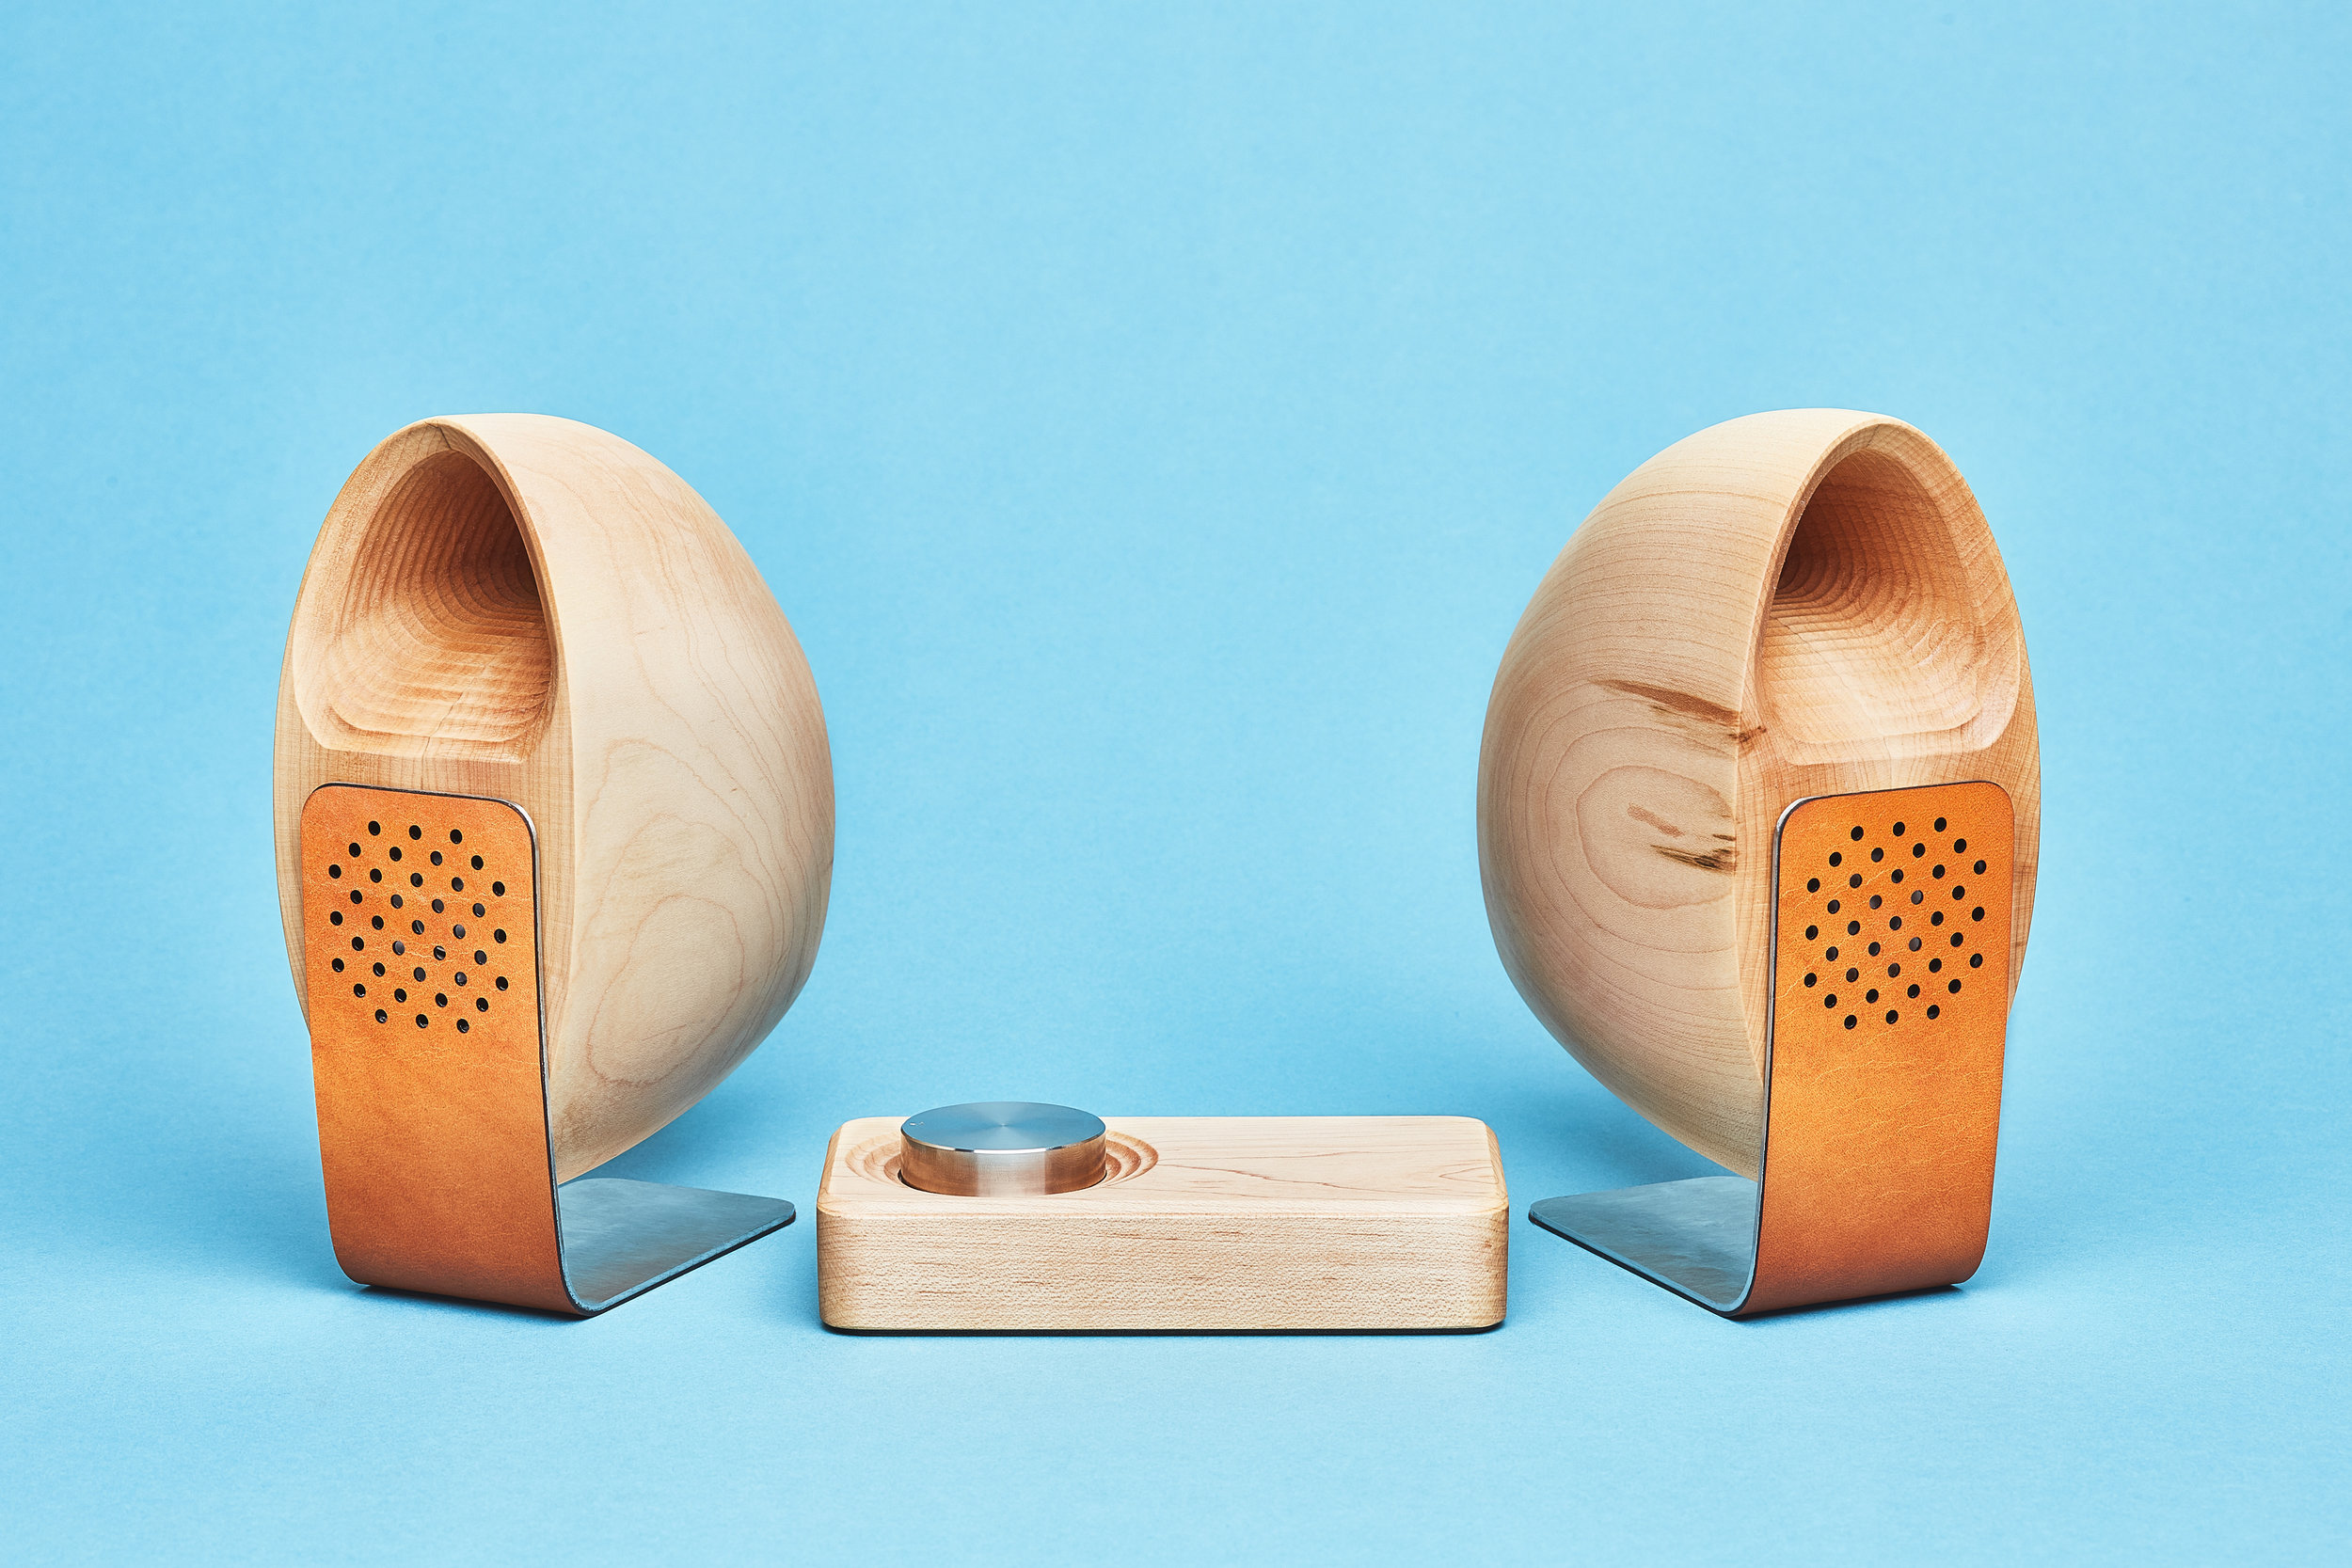 Grovemade x Joey Roth Speakers